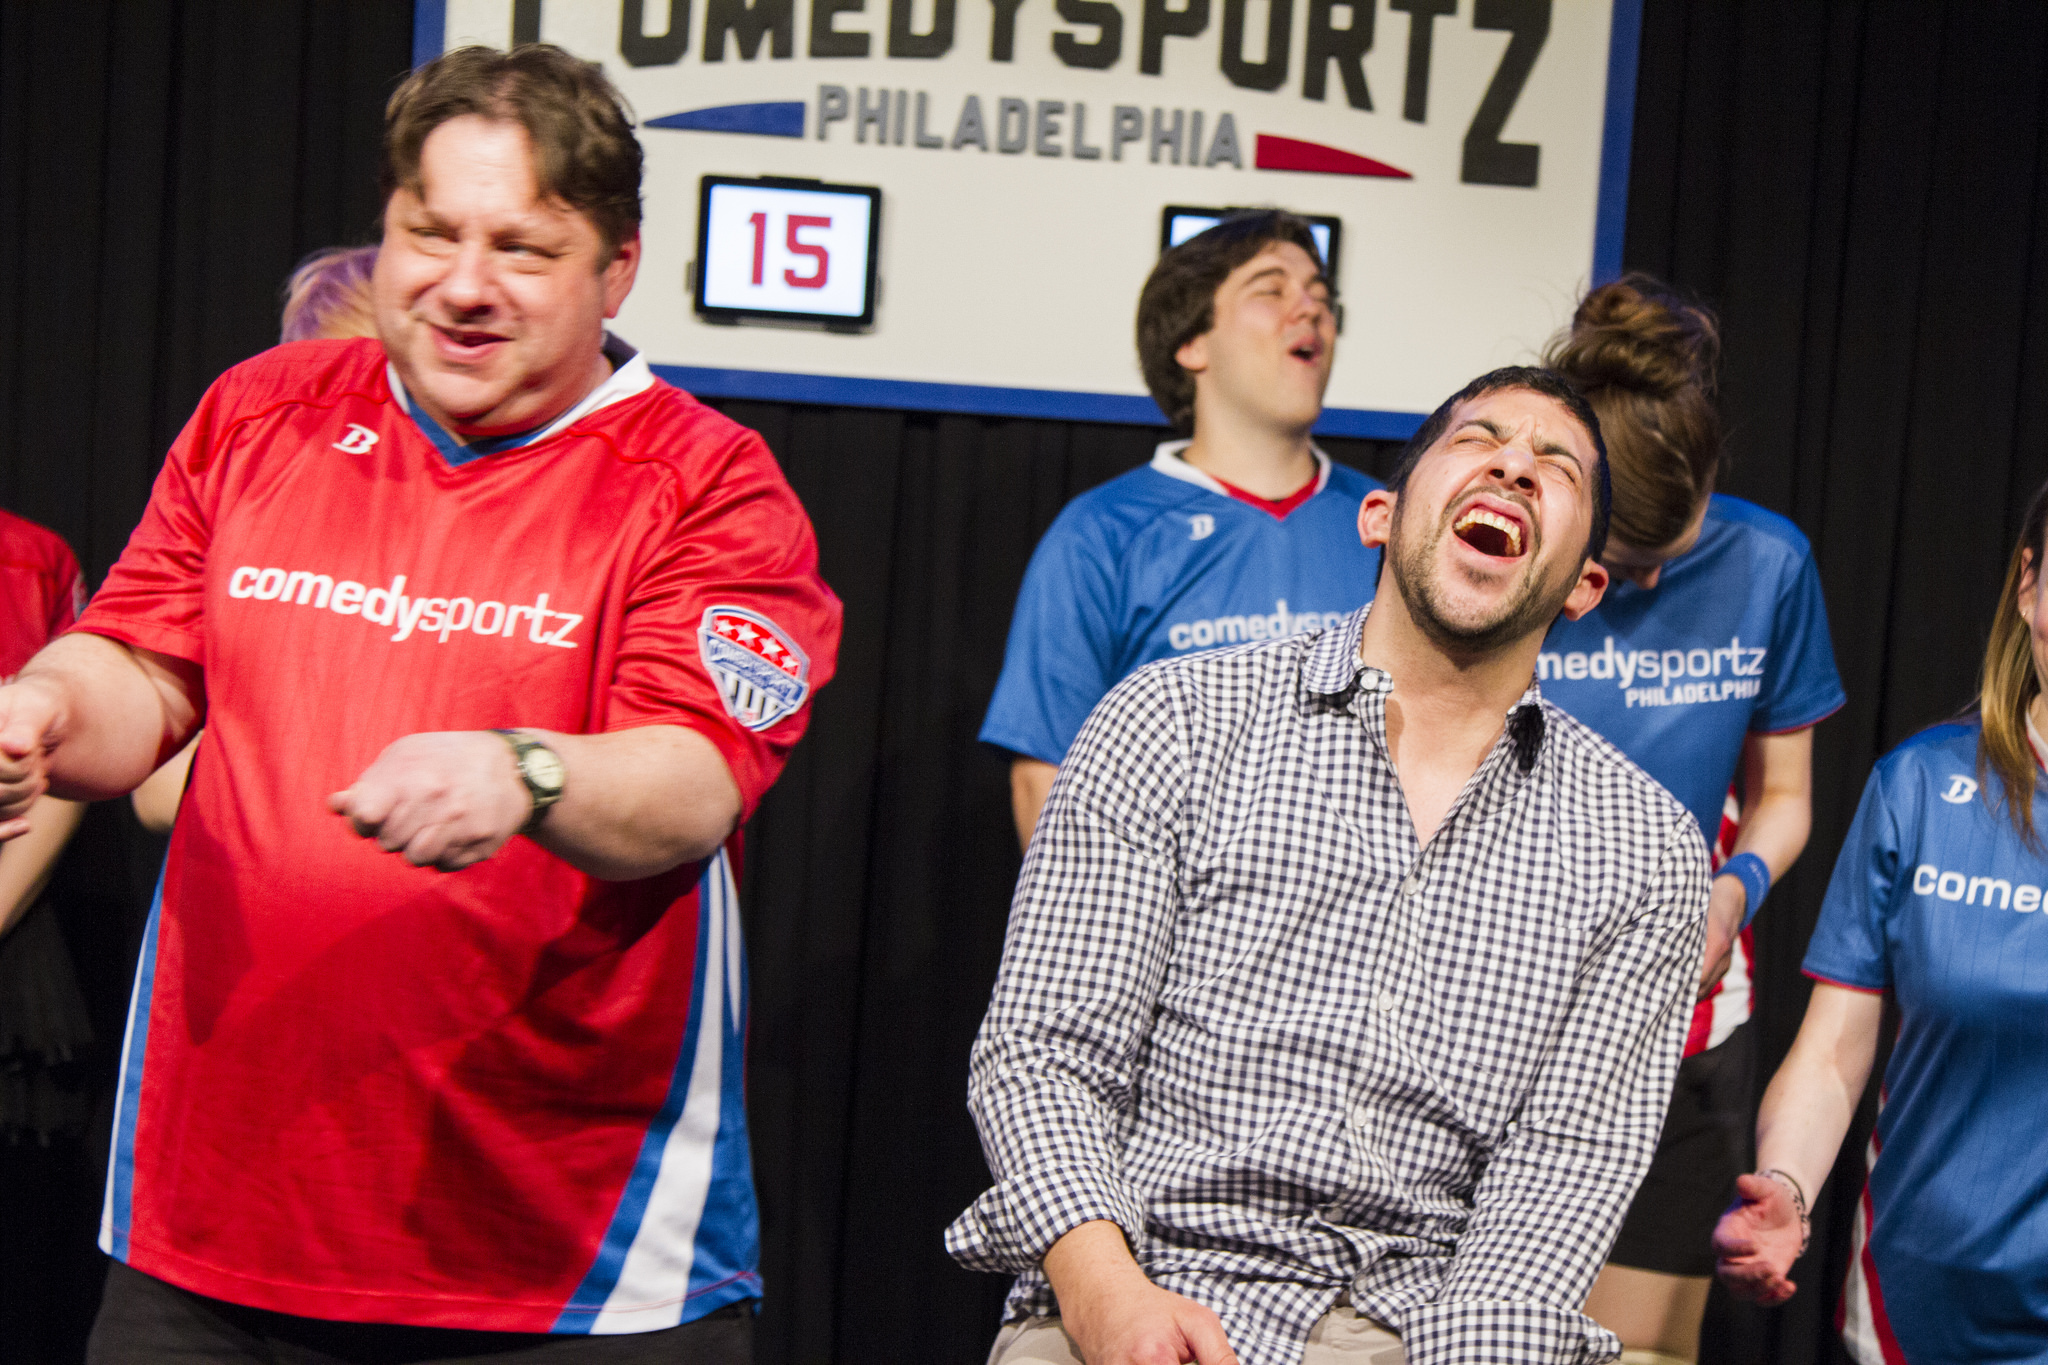 ComedySportz Players Playing Hey Waiter